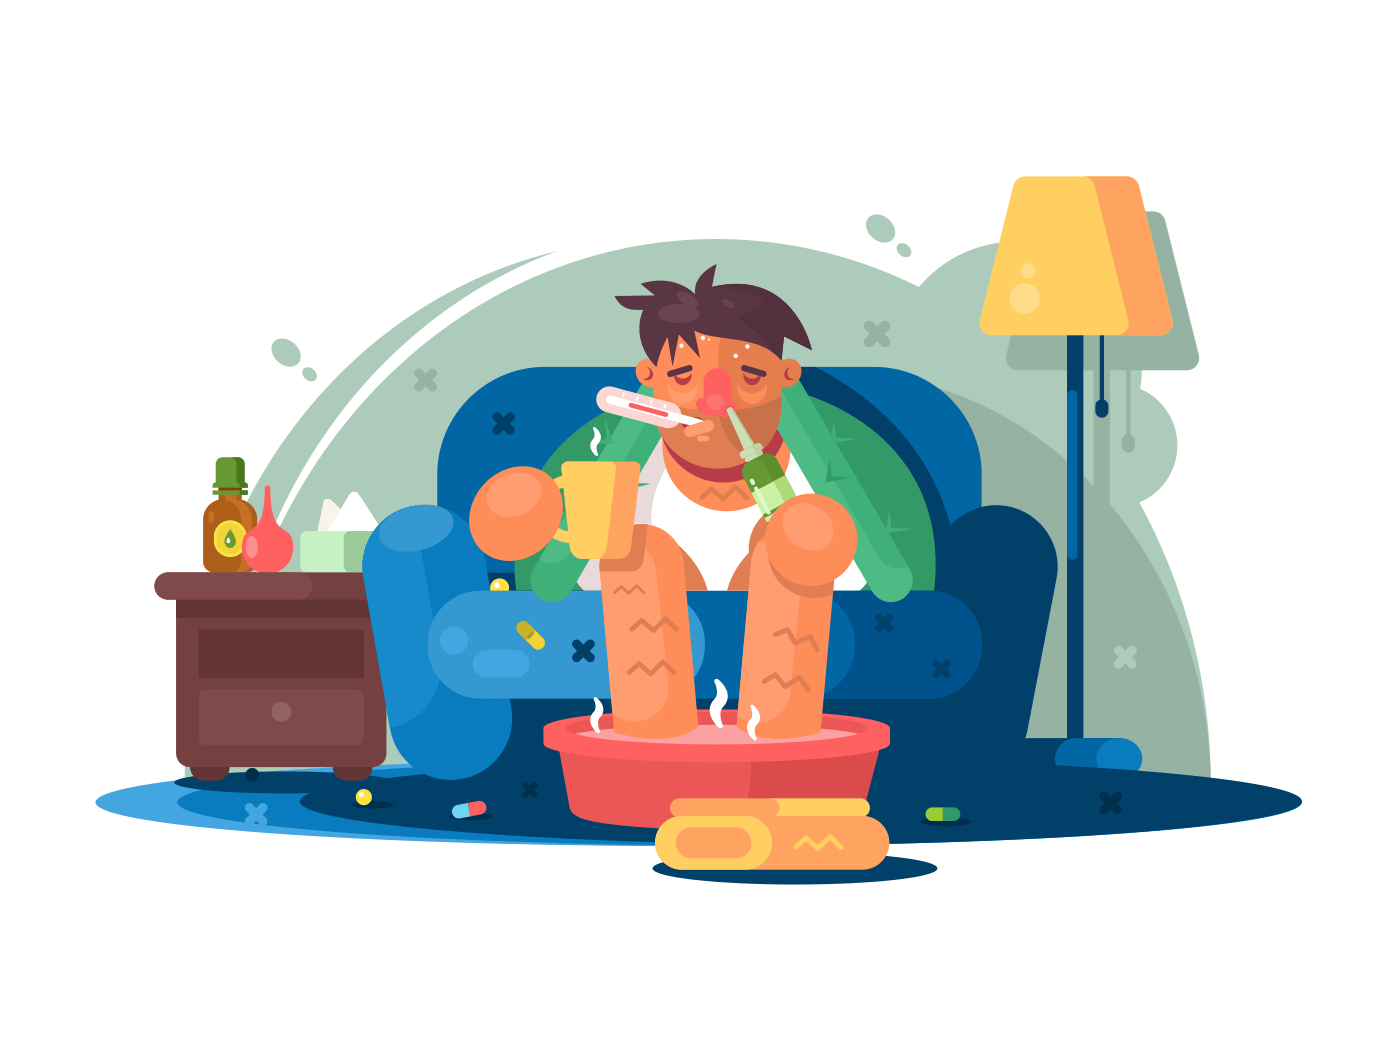 Man sick with cold illustration